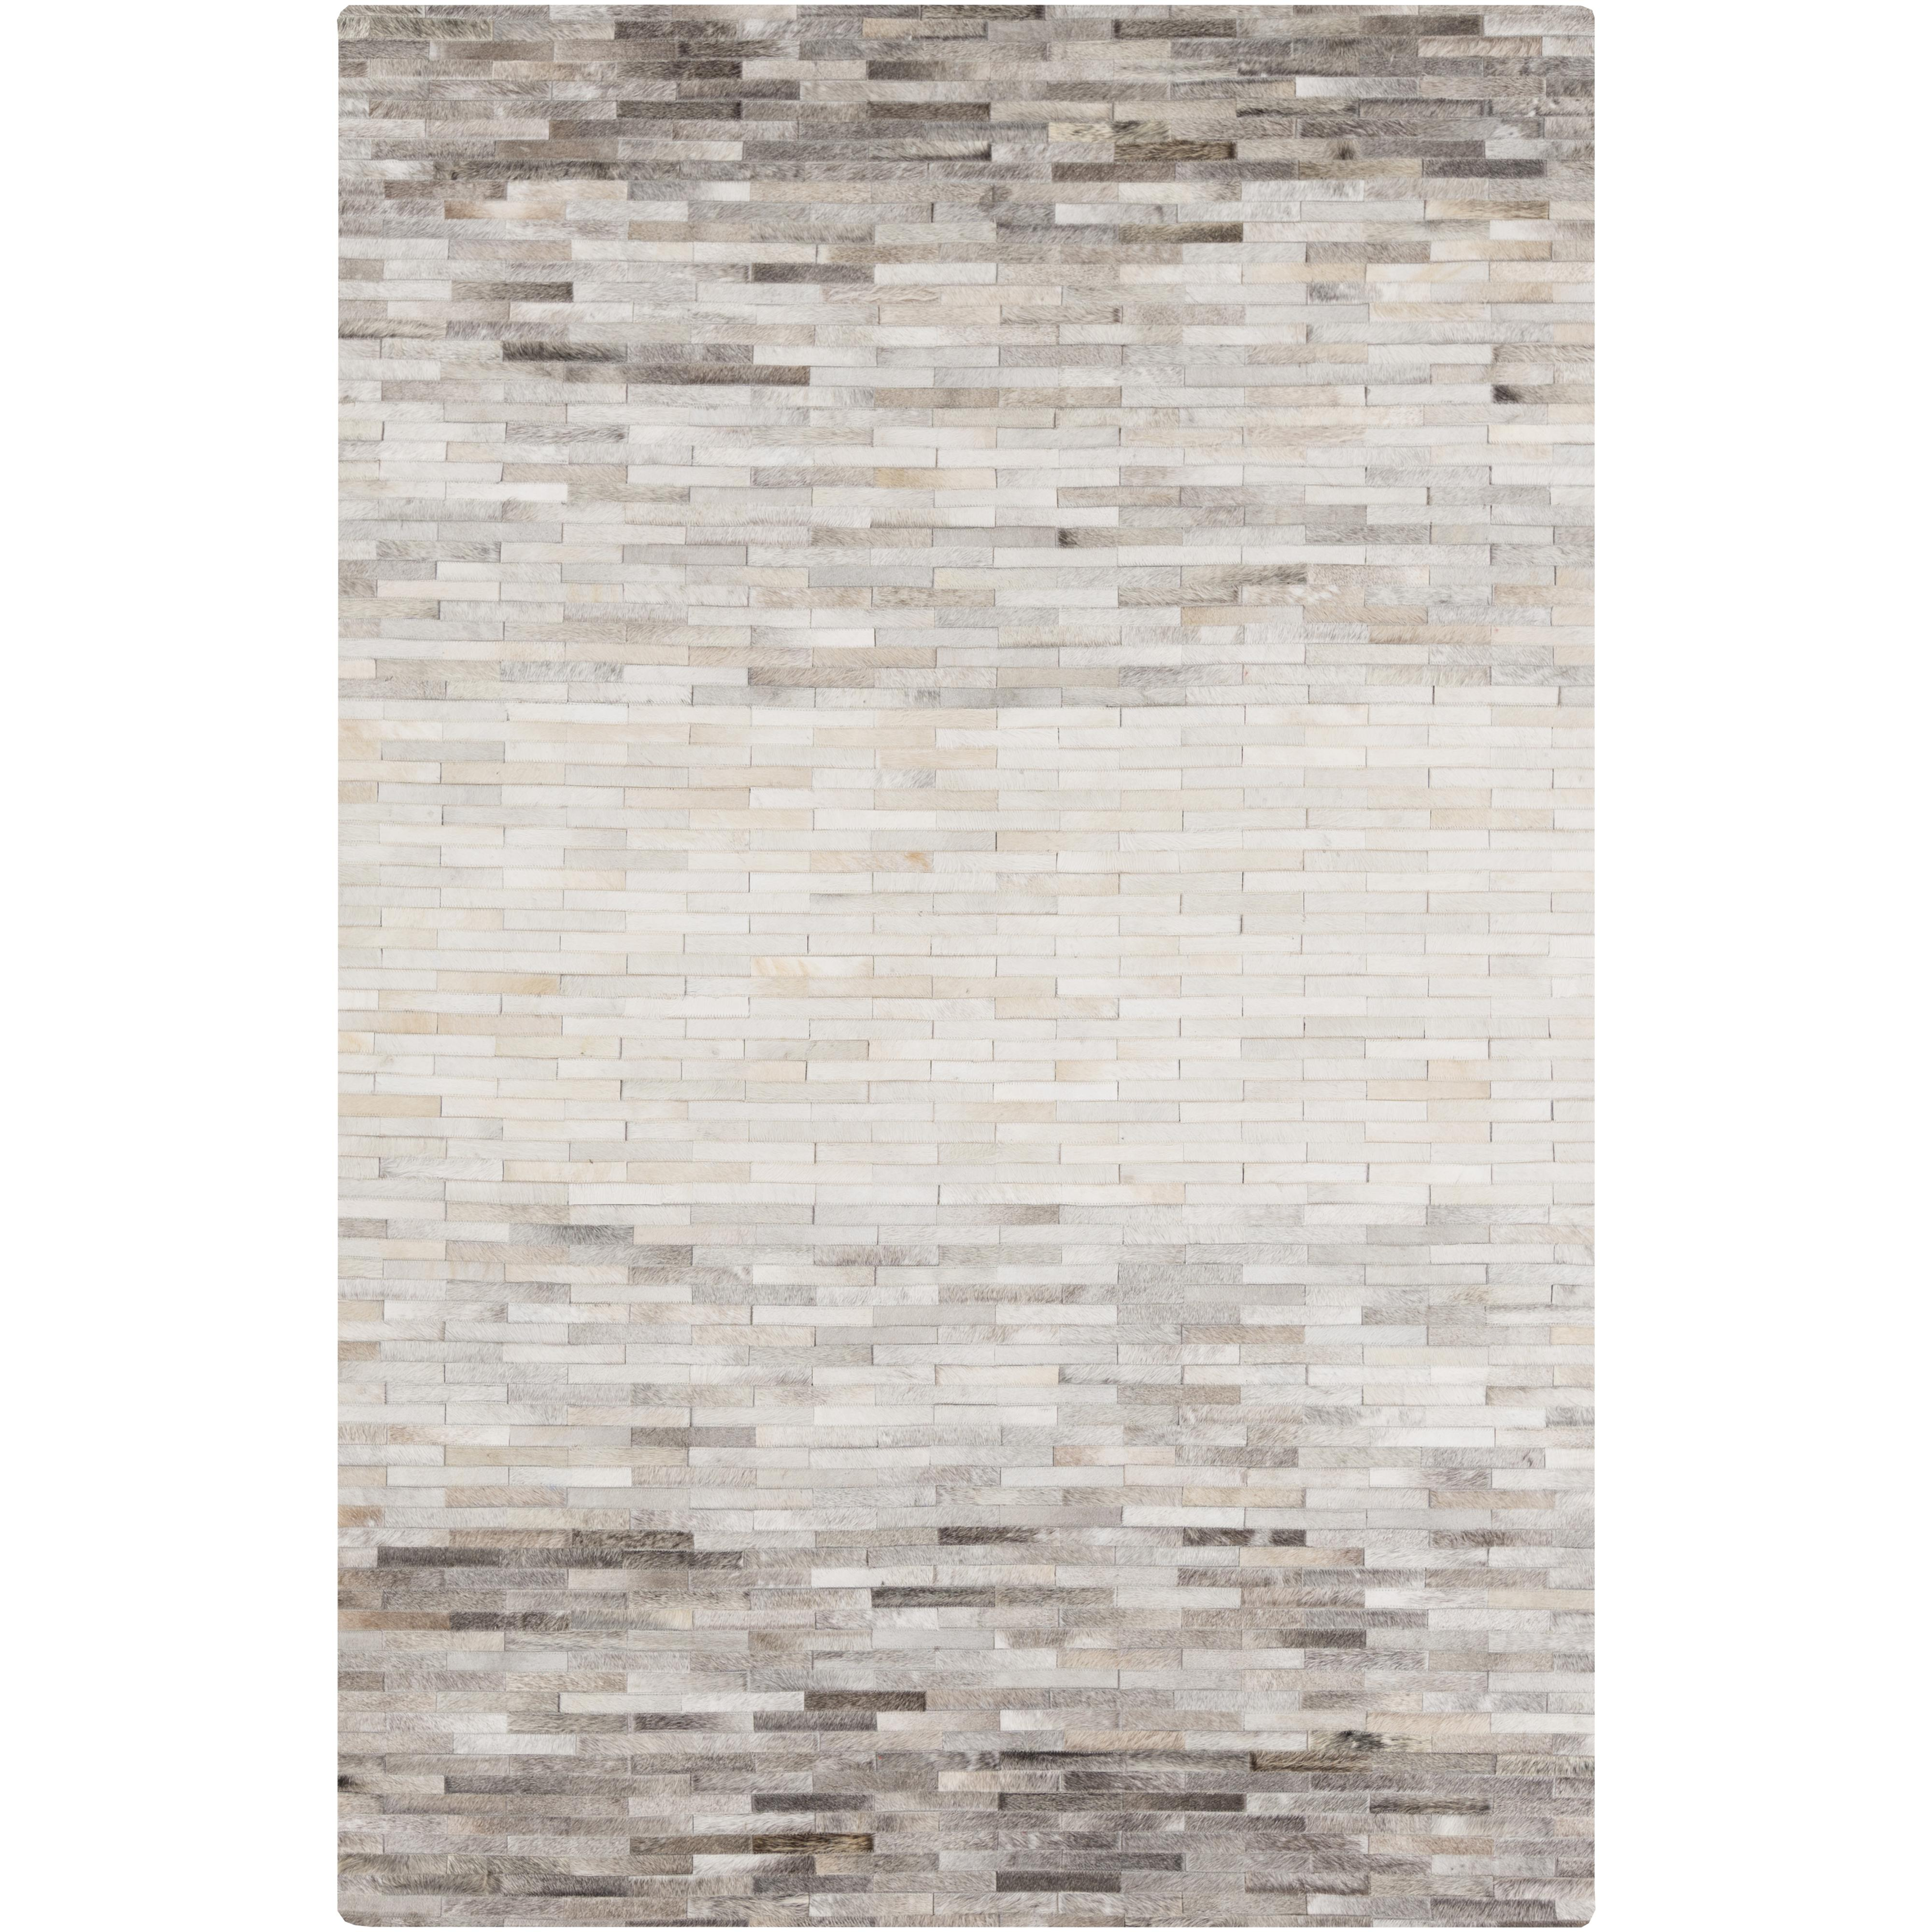 Outback 2' x 3' by 9596 at Becker Furniture